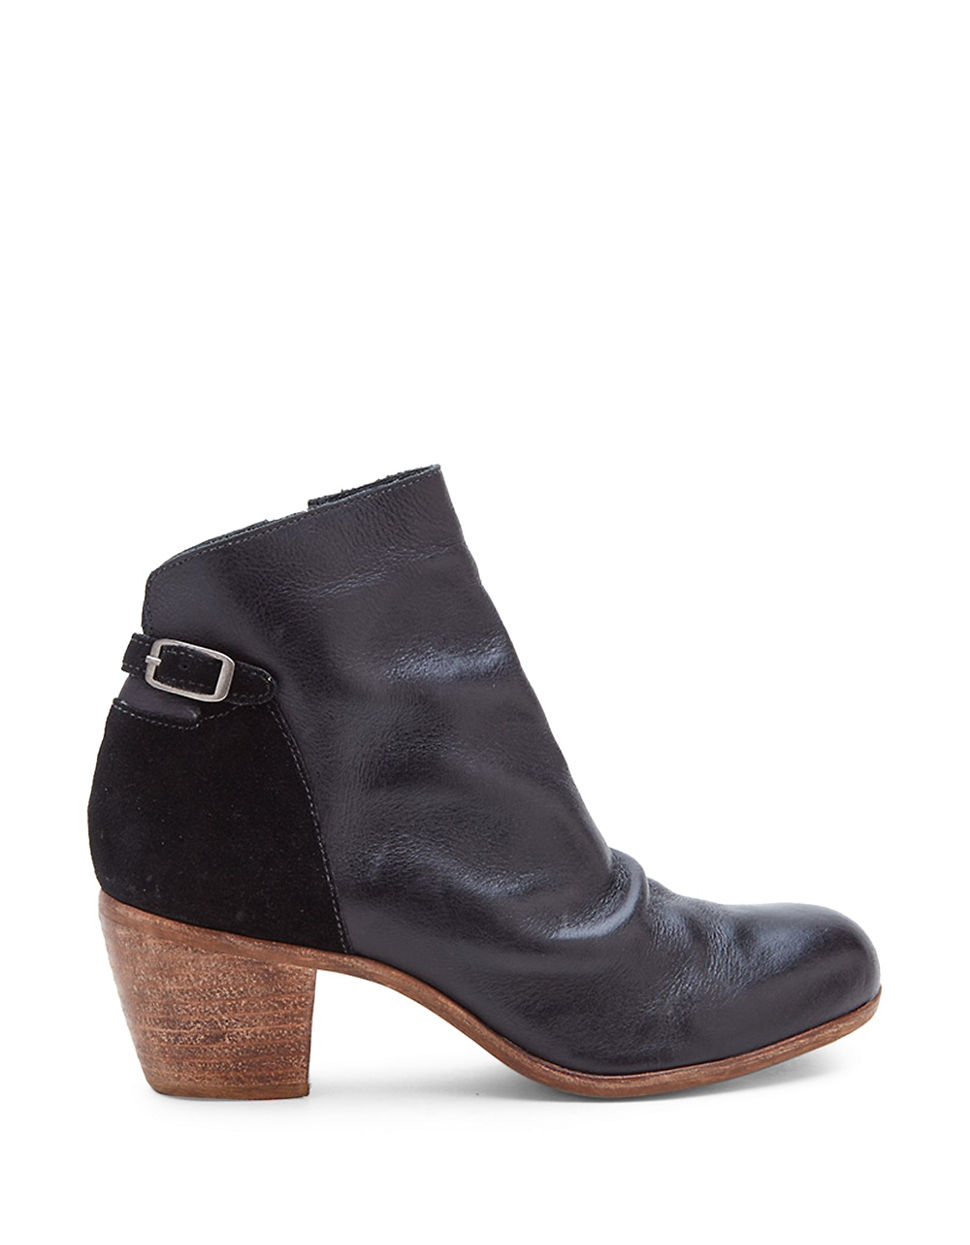 matisse lorenzo leather and suede boots in black lyst